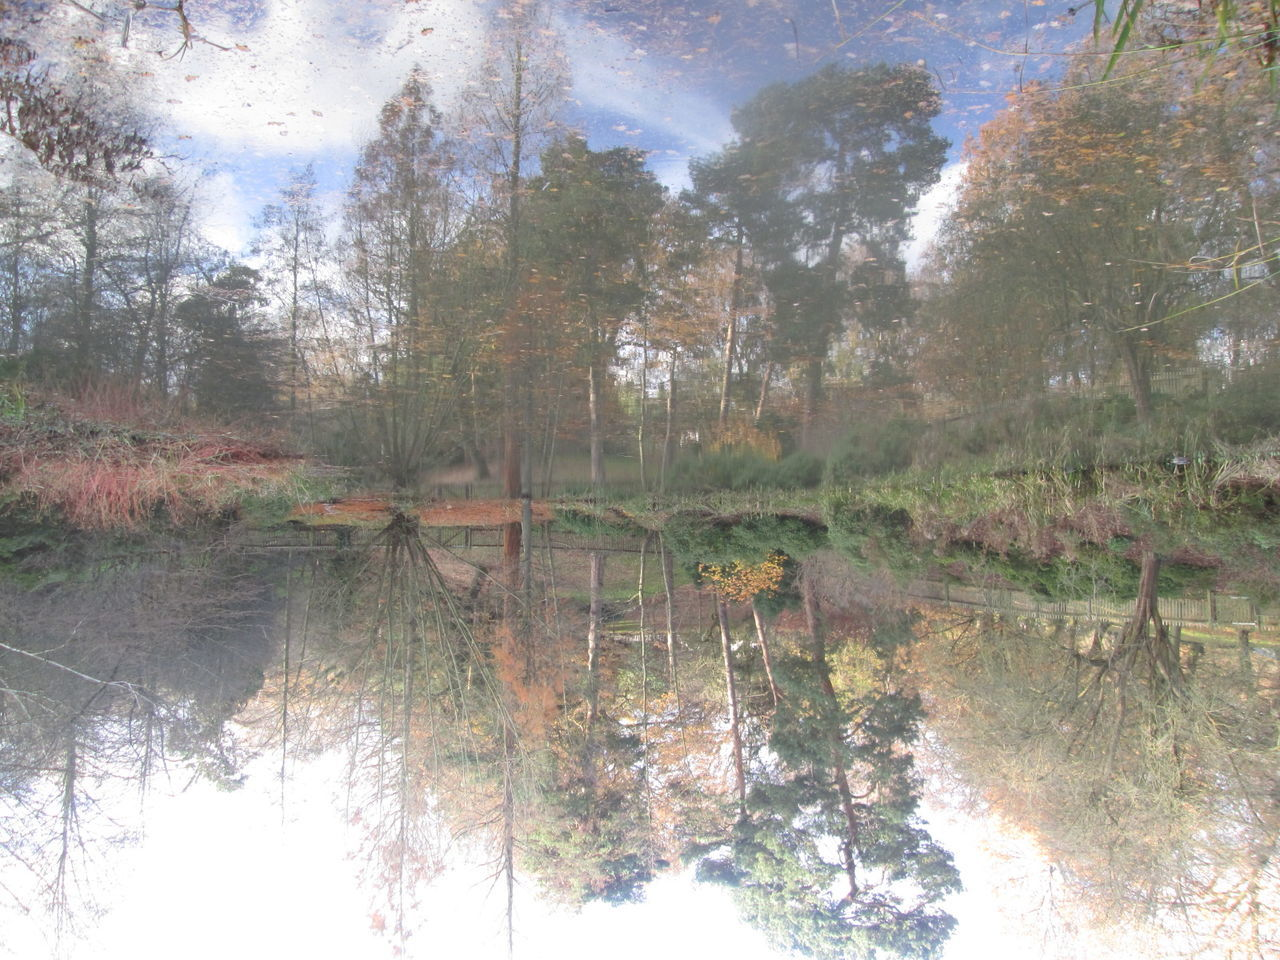 Abstract Autumn Beauty In Nature Favourite Places Hampstead Heath Illusion Photography London No People Nofilternoedit Reflection Tranquil Scene Tranquility